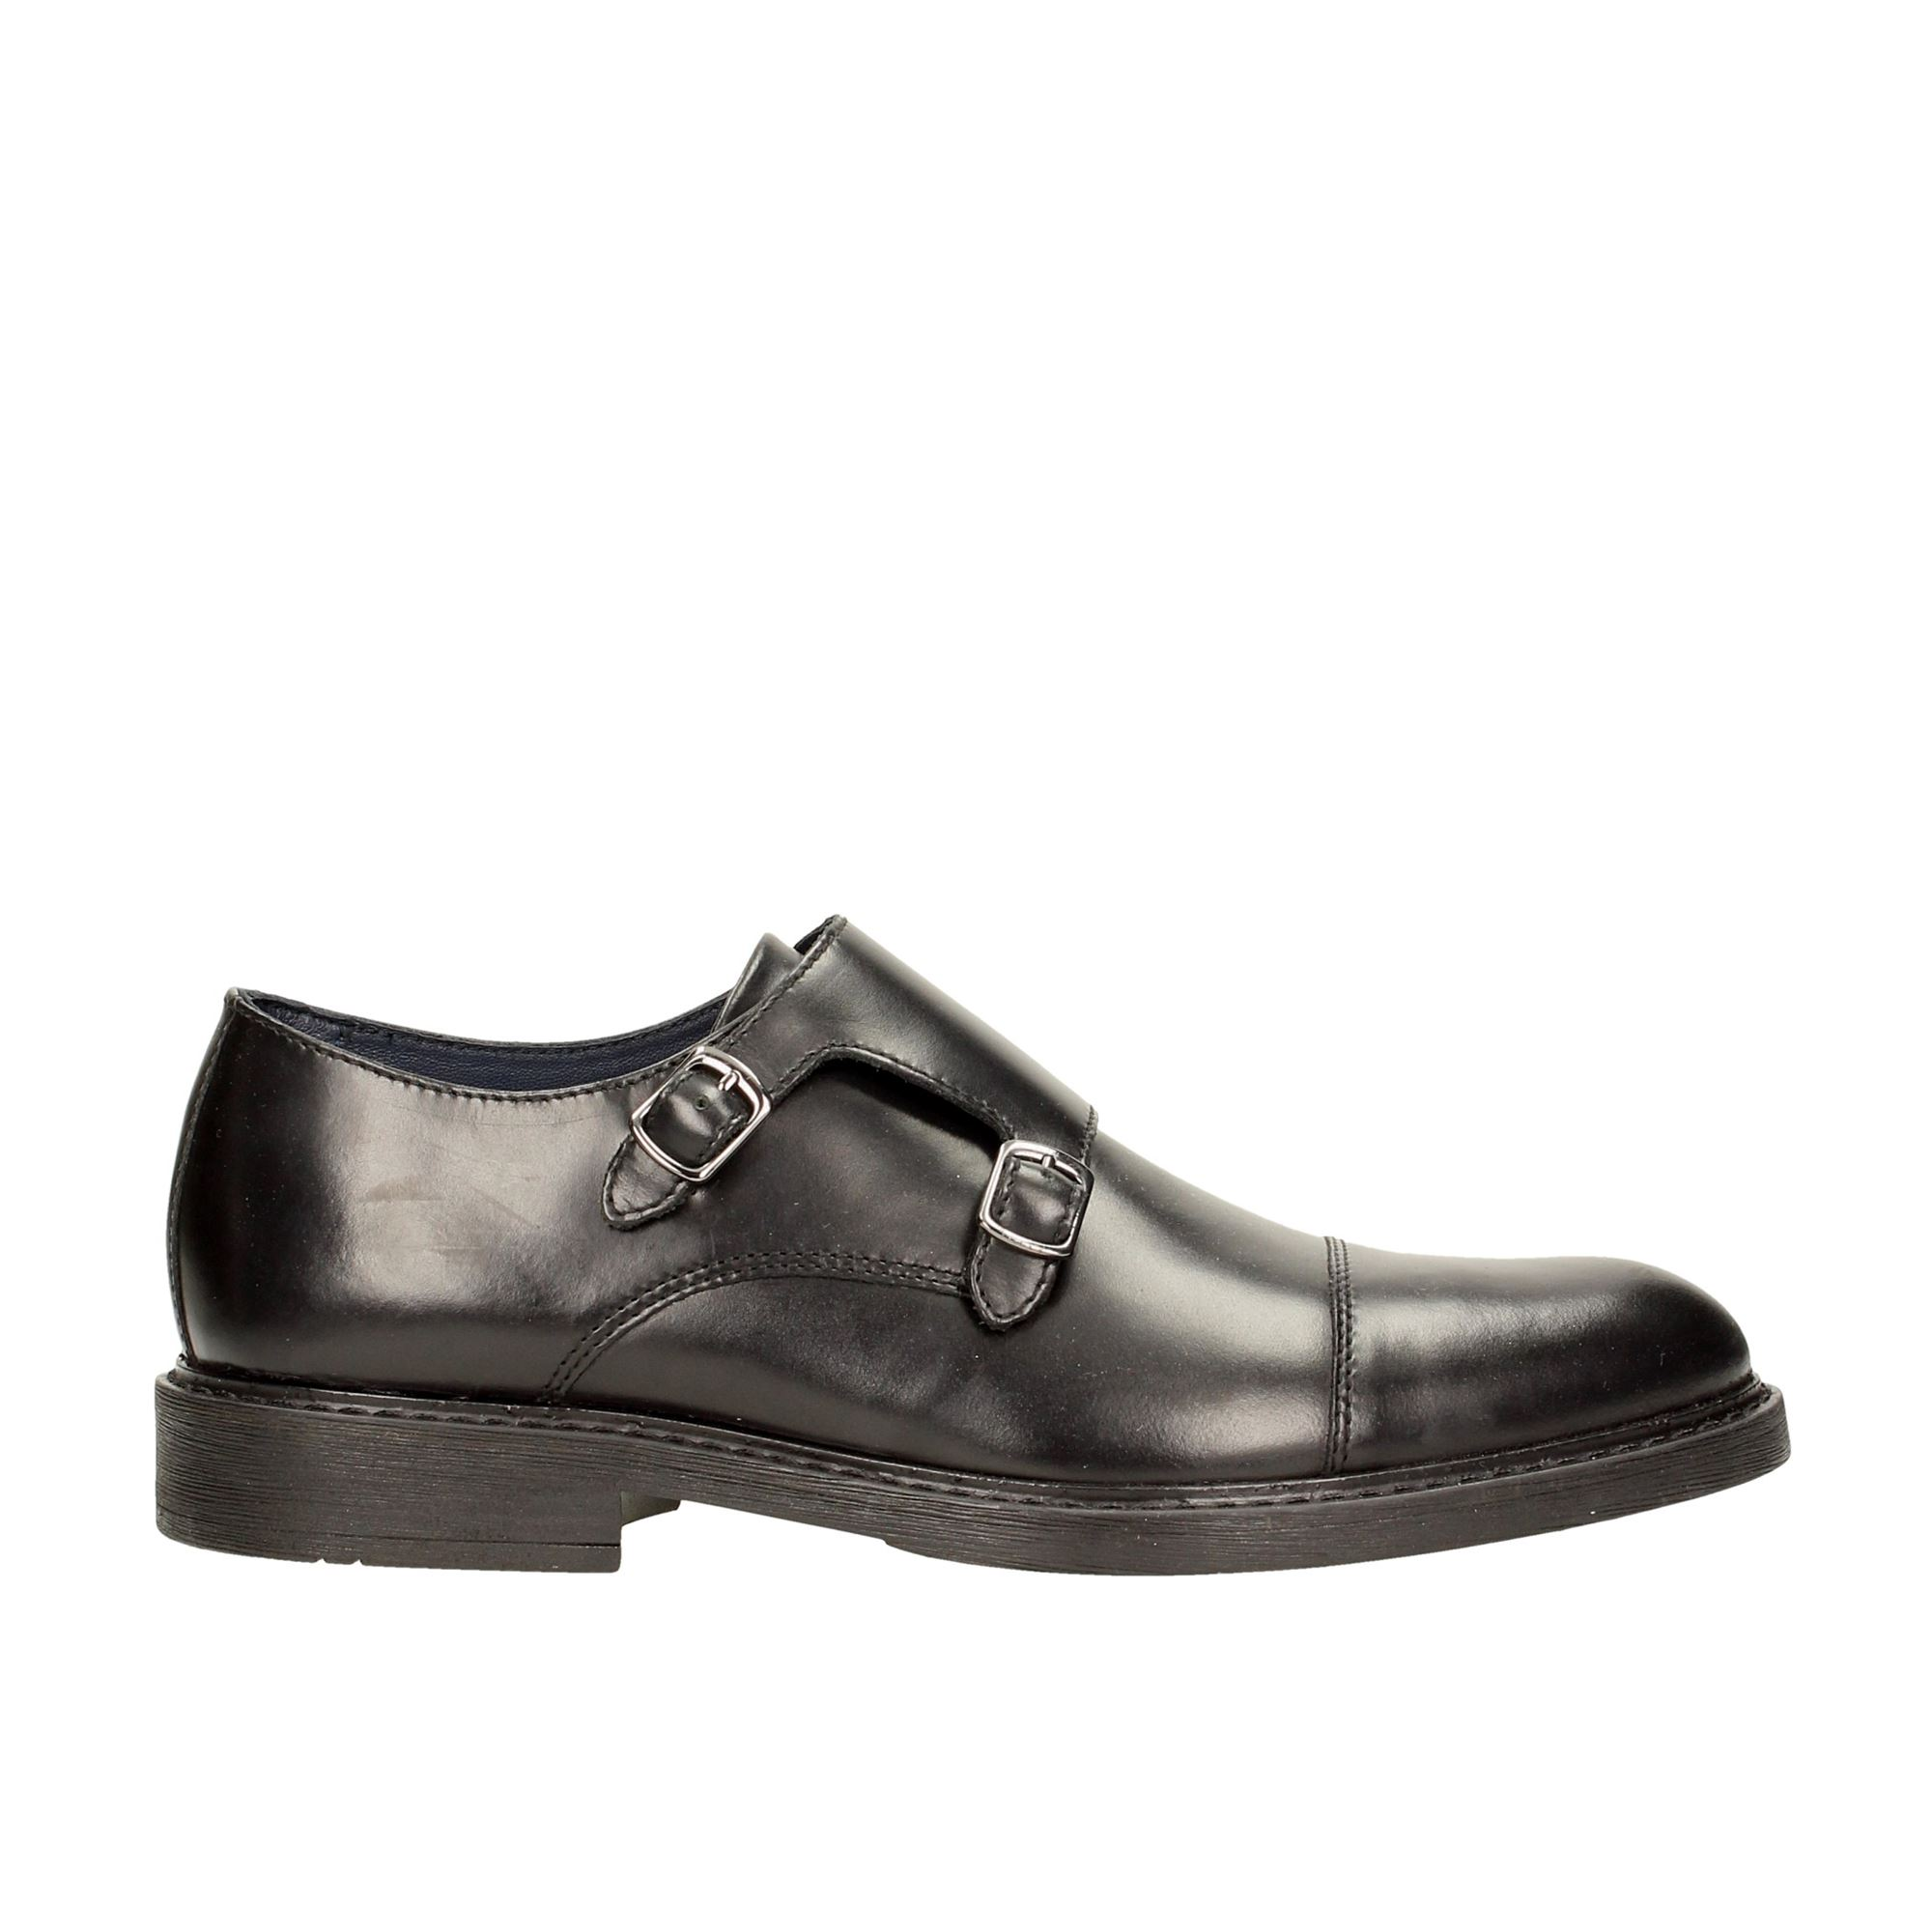 Tata Italia Shoes Man Mocassini Black 8-05-04/I18